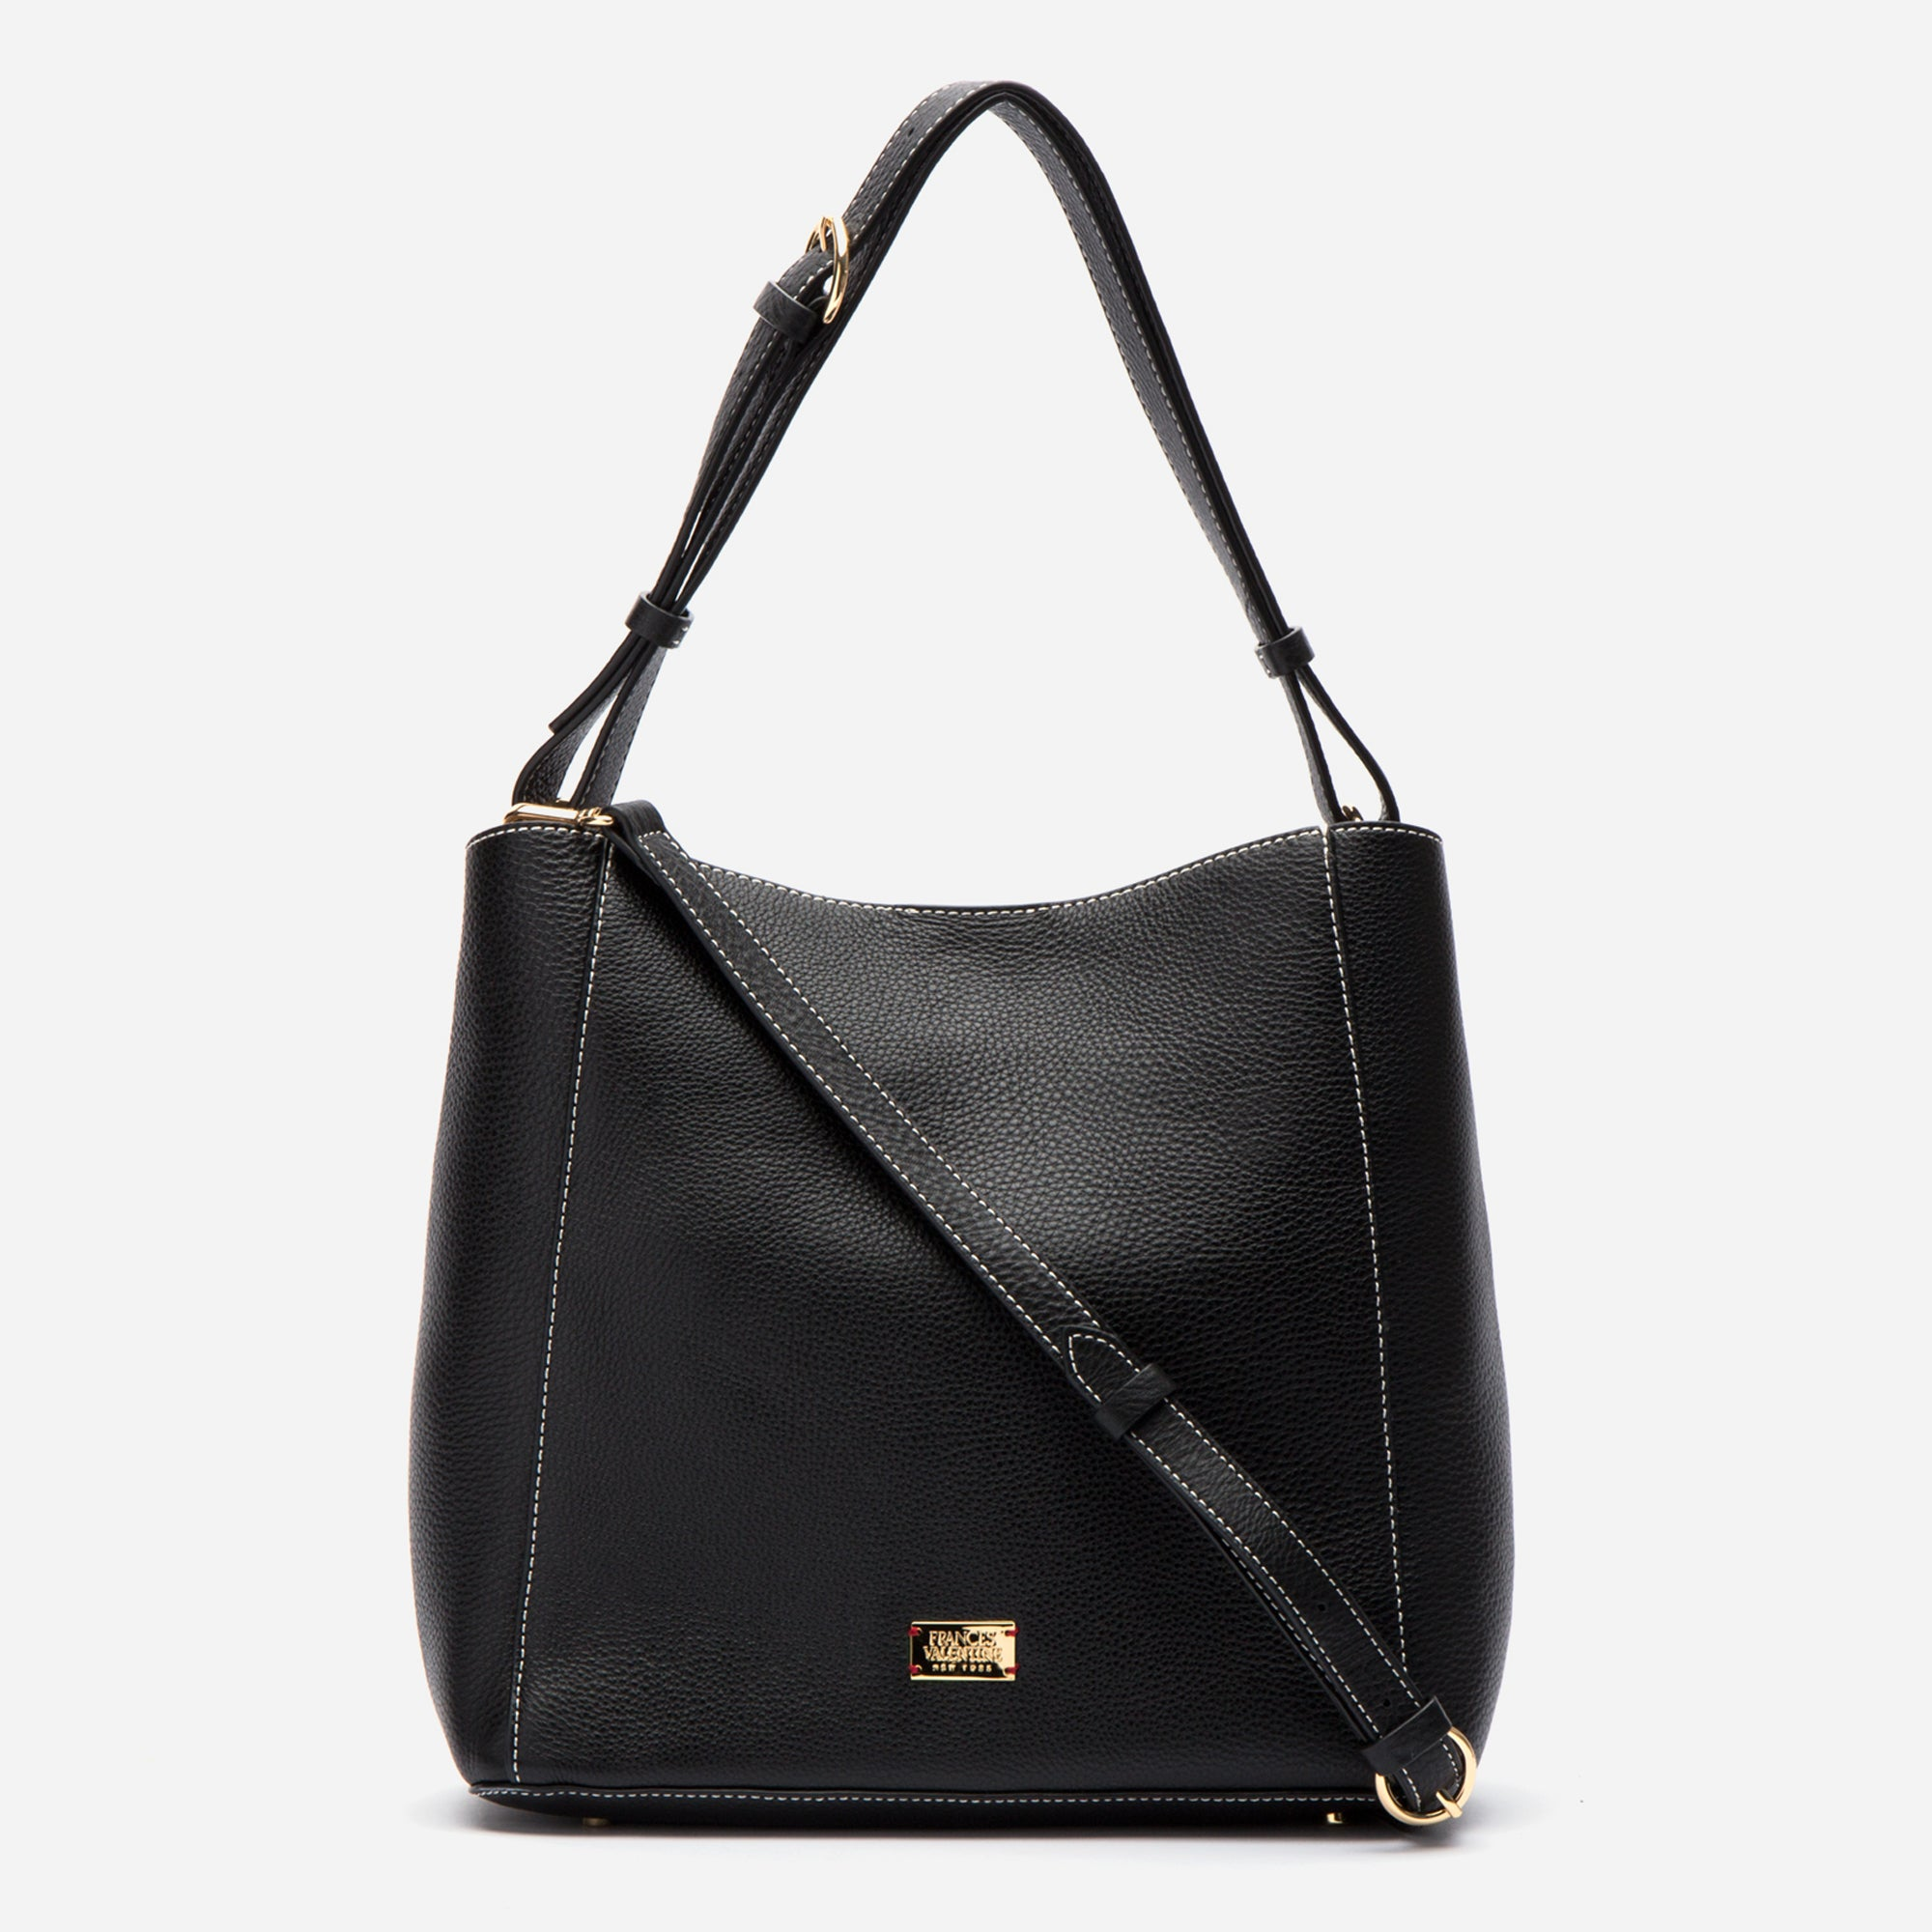 June Hobo Handbag Leather Black - Frances Valentine